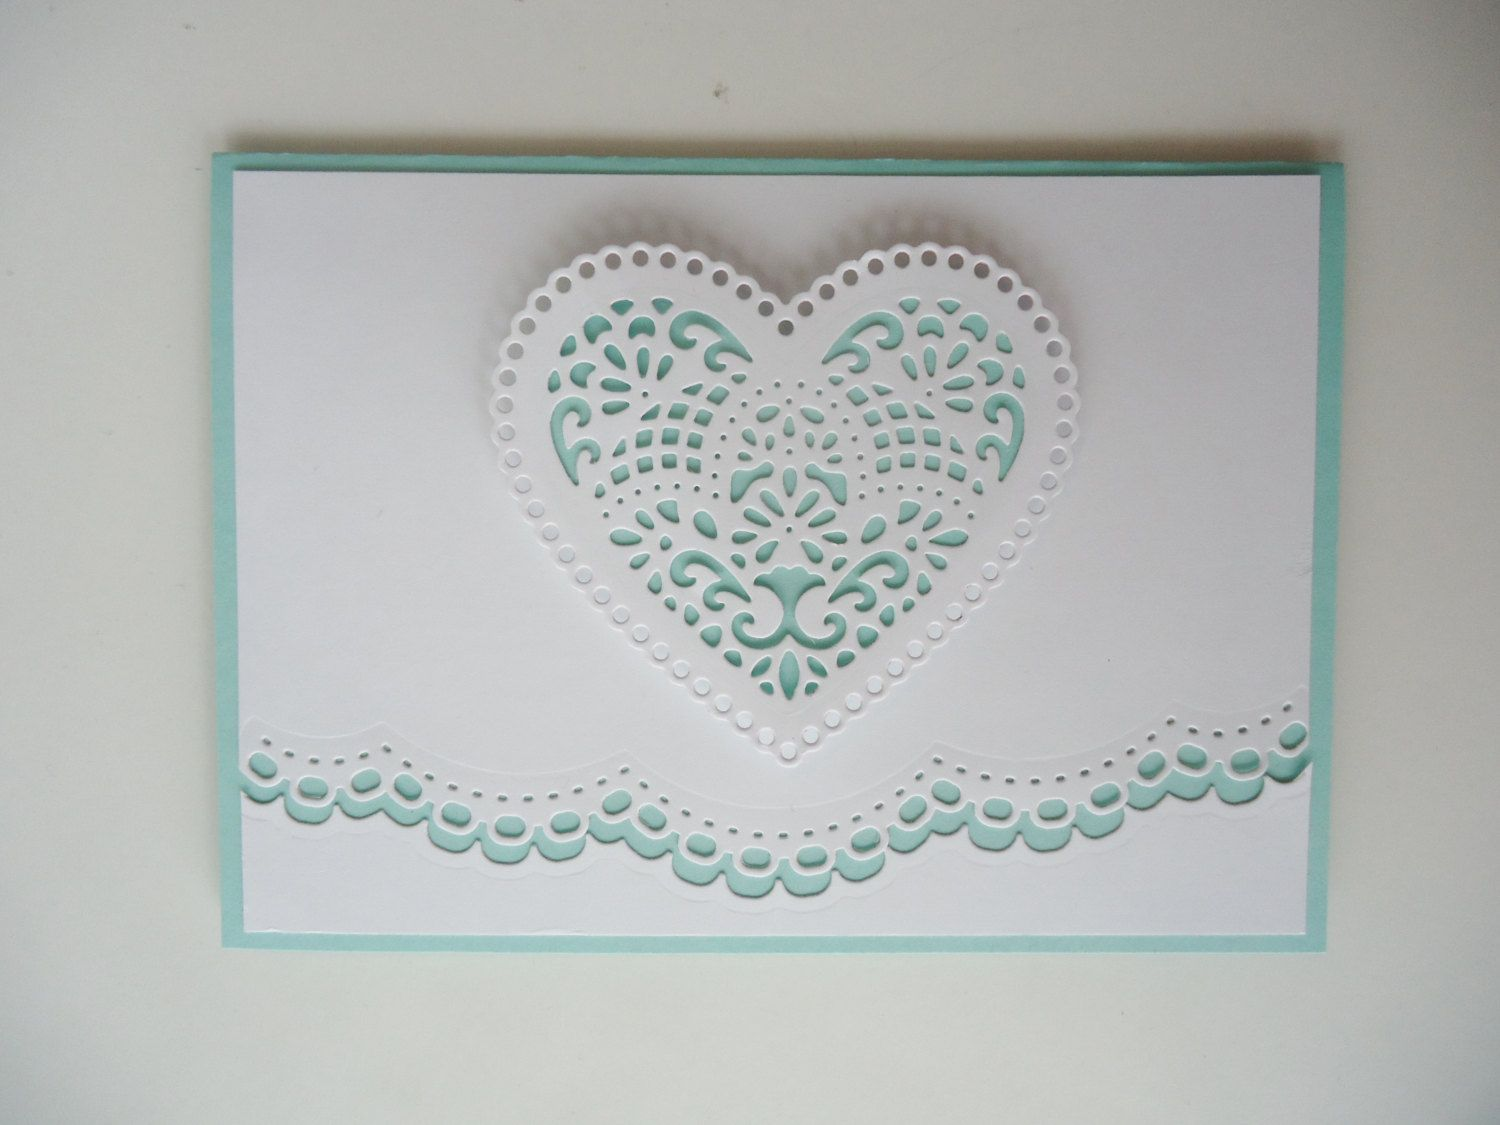 Paper lace wedding card - Congratulations to the Bride & Groom - White and mint green - Can be customized, please ask by JustforUnotes on Etsy https://www.etsy.com/listing/236606145/paper-lace-wedding-card-congratulations